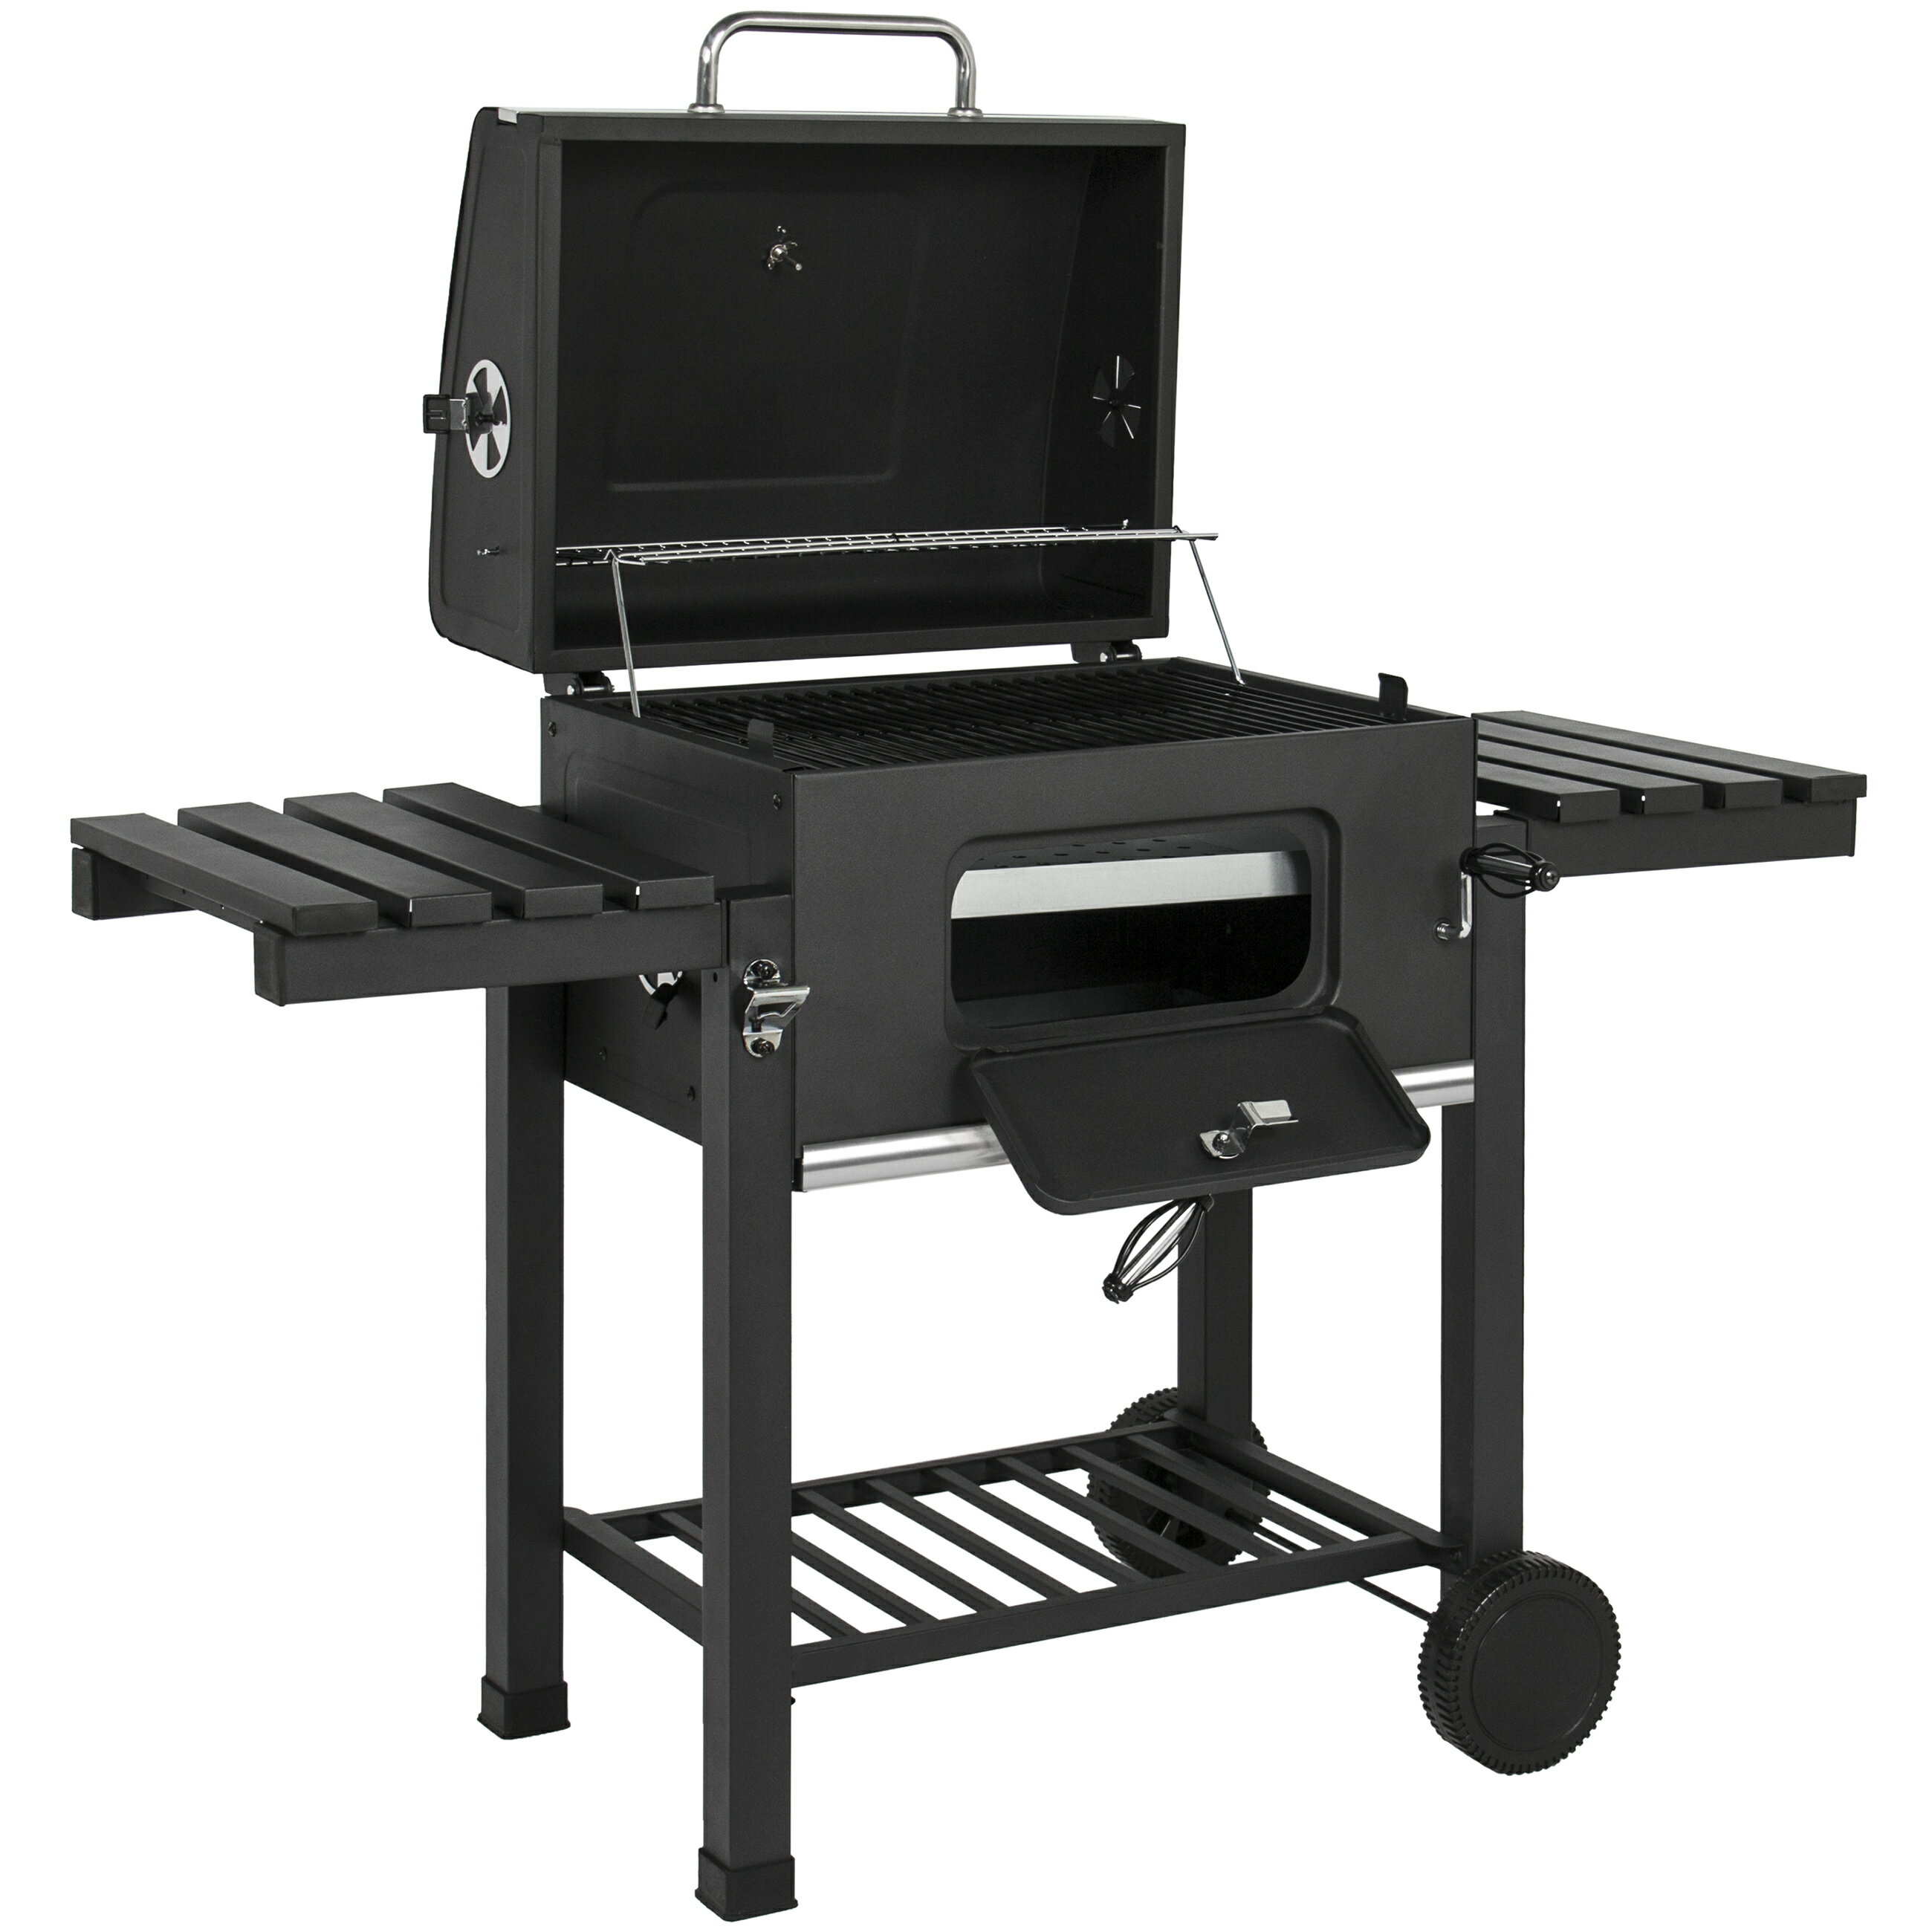 Backyard Charcoal Grill bestchoiceproducts: best choice products outdoor backyard premium